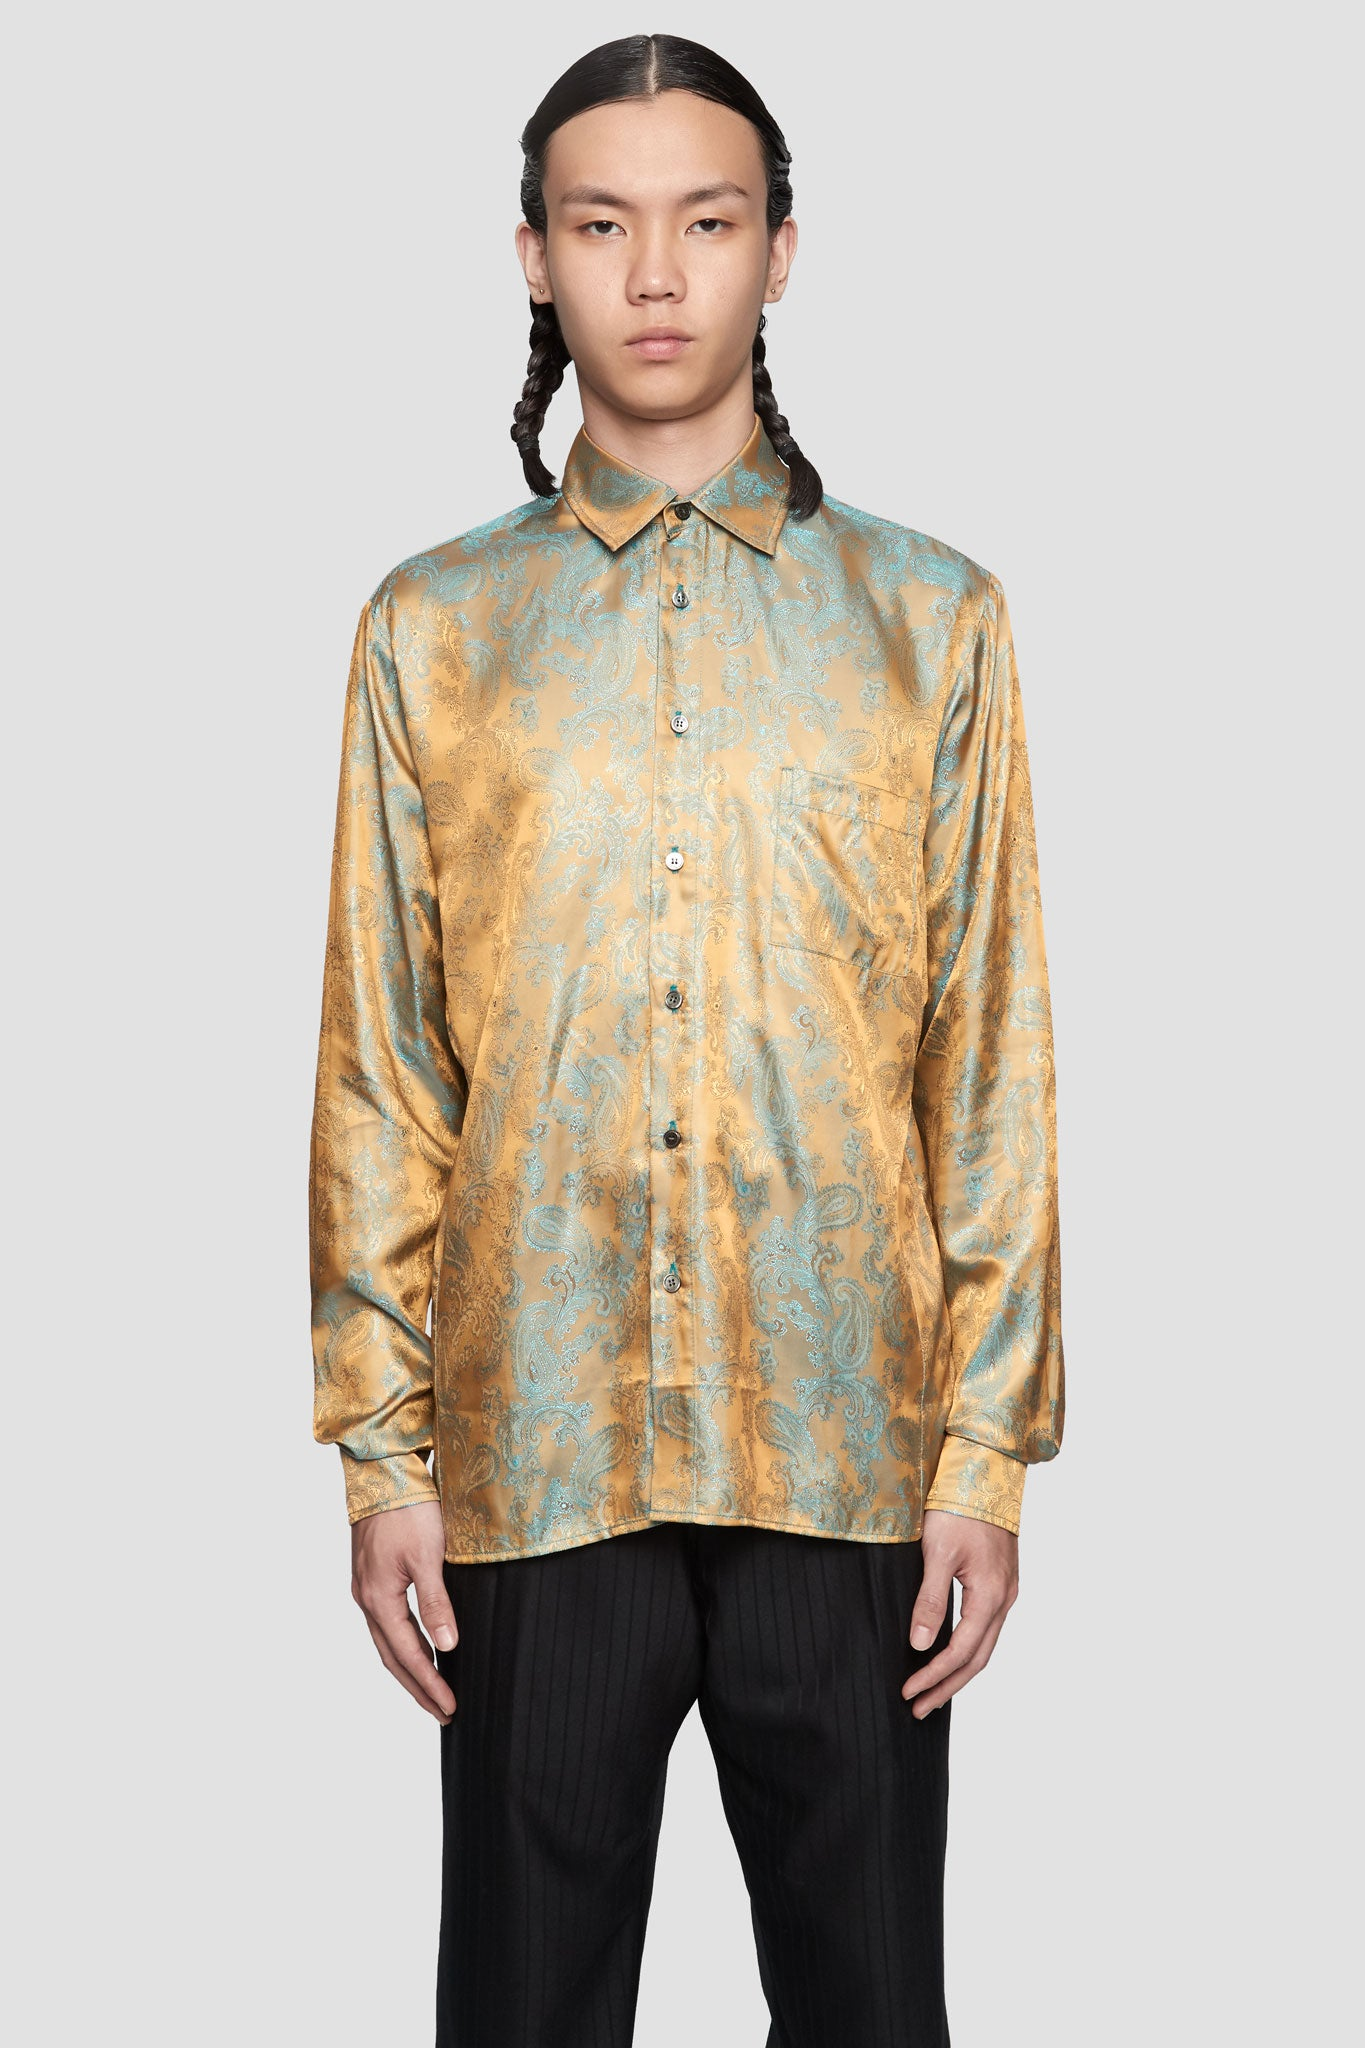 DIETER'  Paisley Shirts Gold/Turquoise